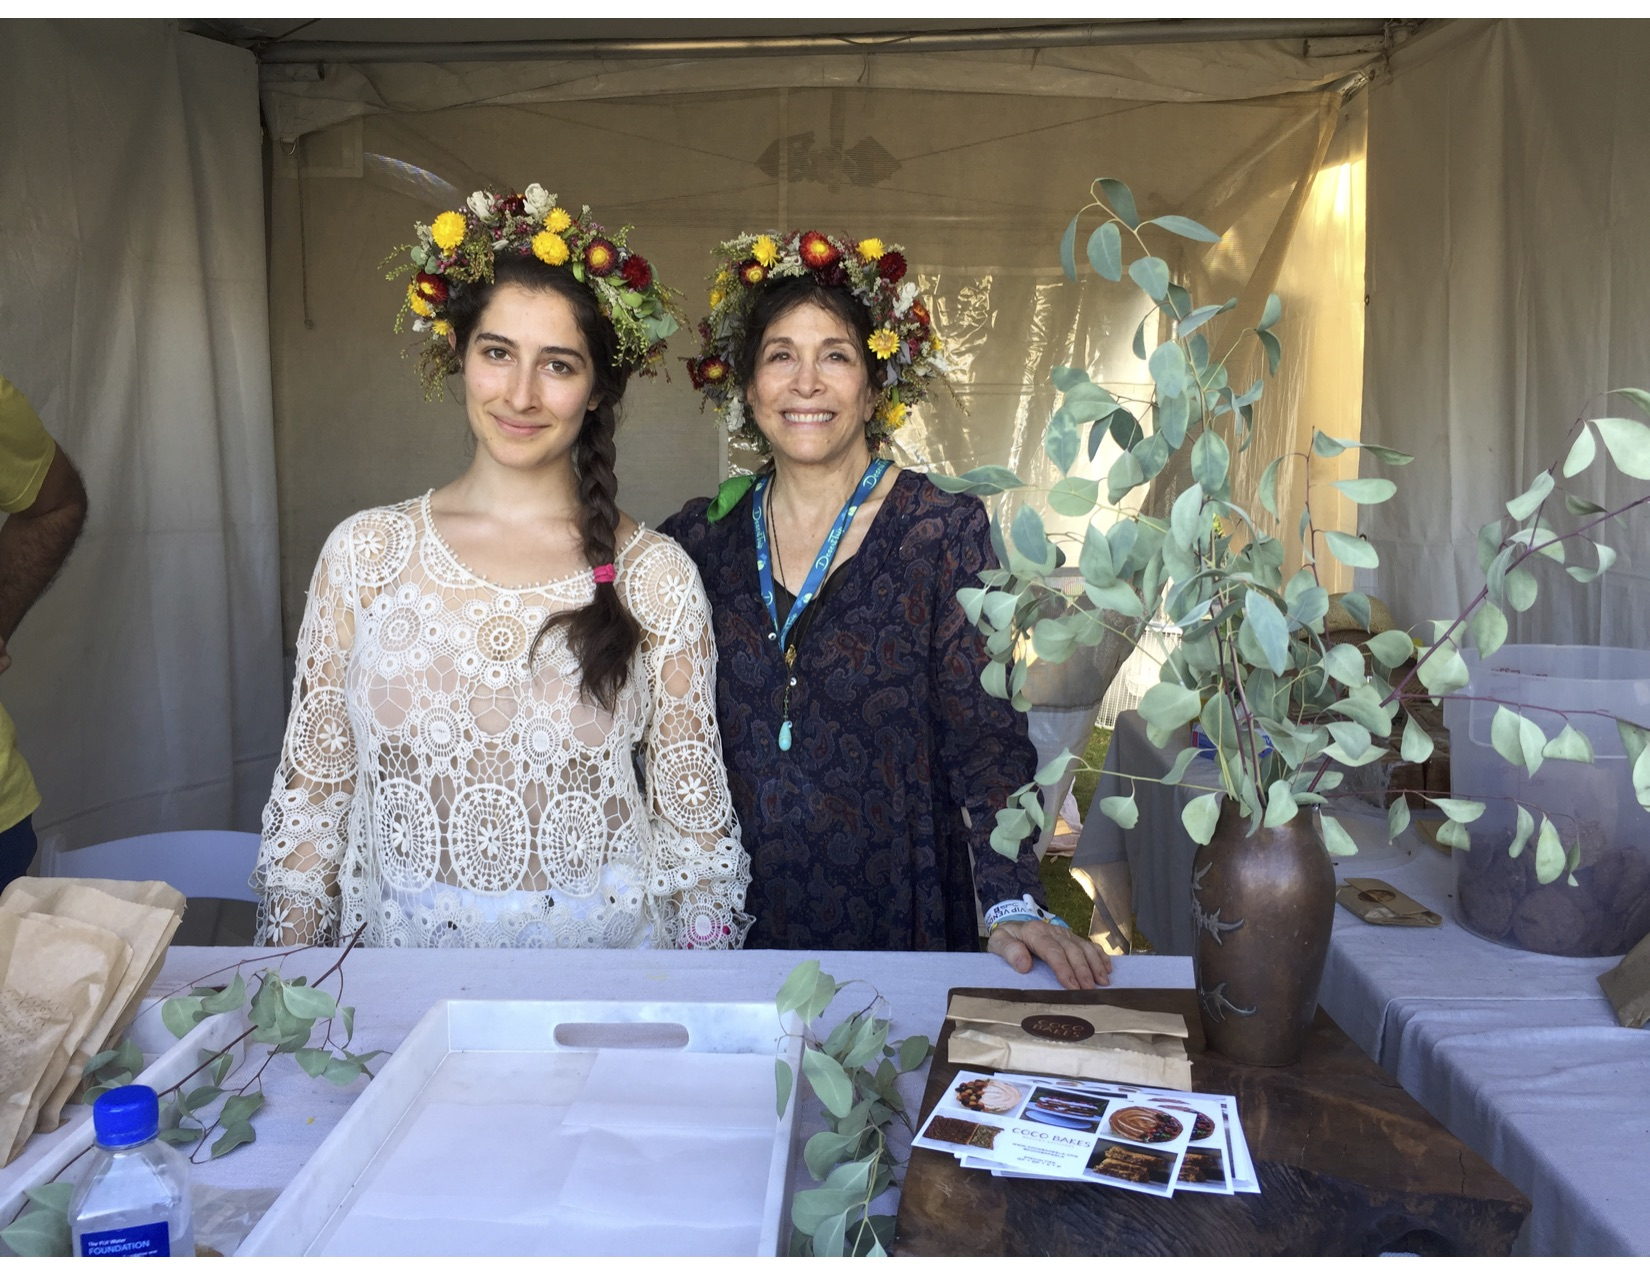 """If you're goin' to San Francisco, don't forget to wear some flowers in your hair..."" These two lovely ladies serving everyone their insanely delicious cookies!"